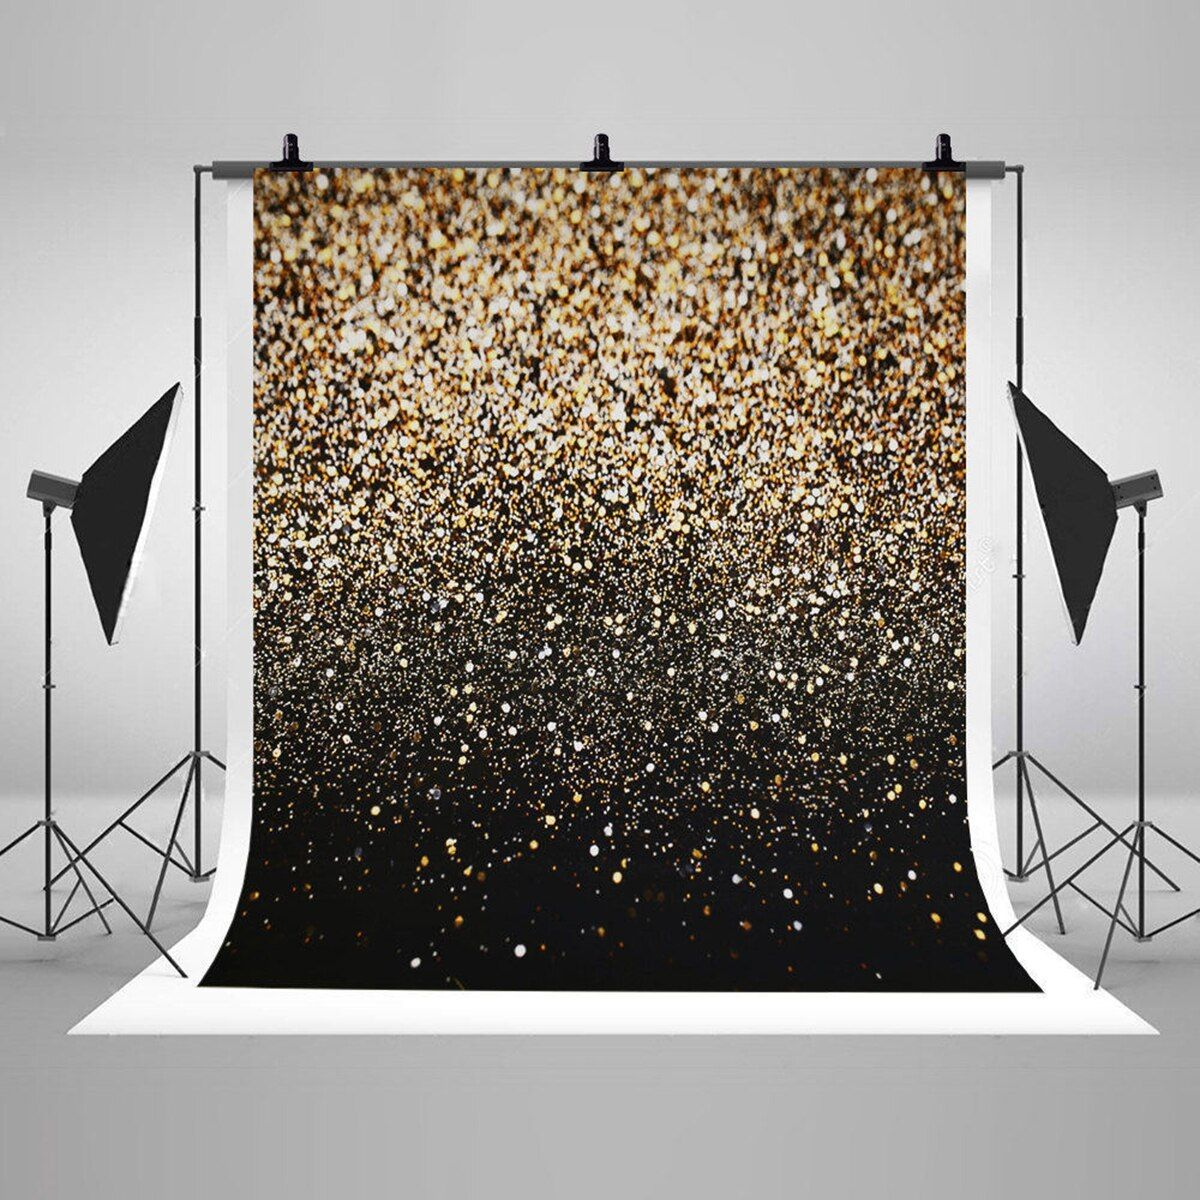 Vinyl Glitter Black Gold Dots Photography Backdrop Background Cloth Studio Photo Booth Props Party Events Decorations Supplies